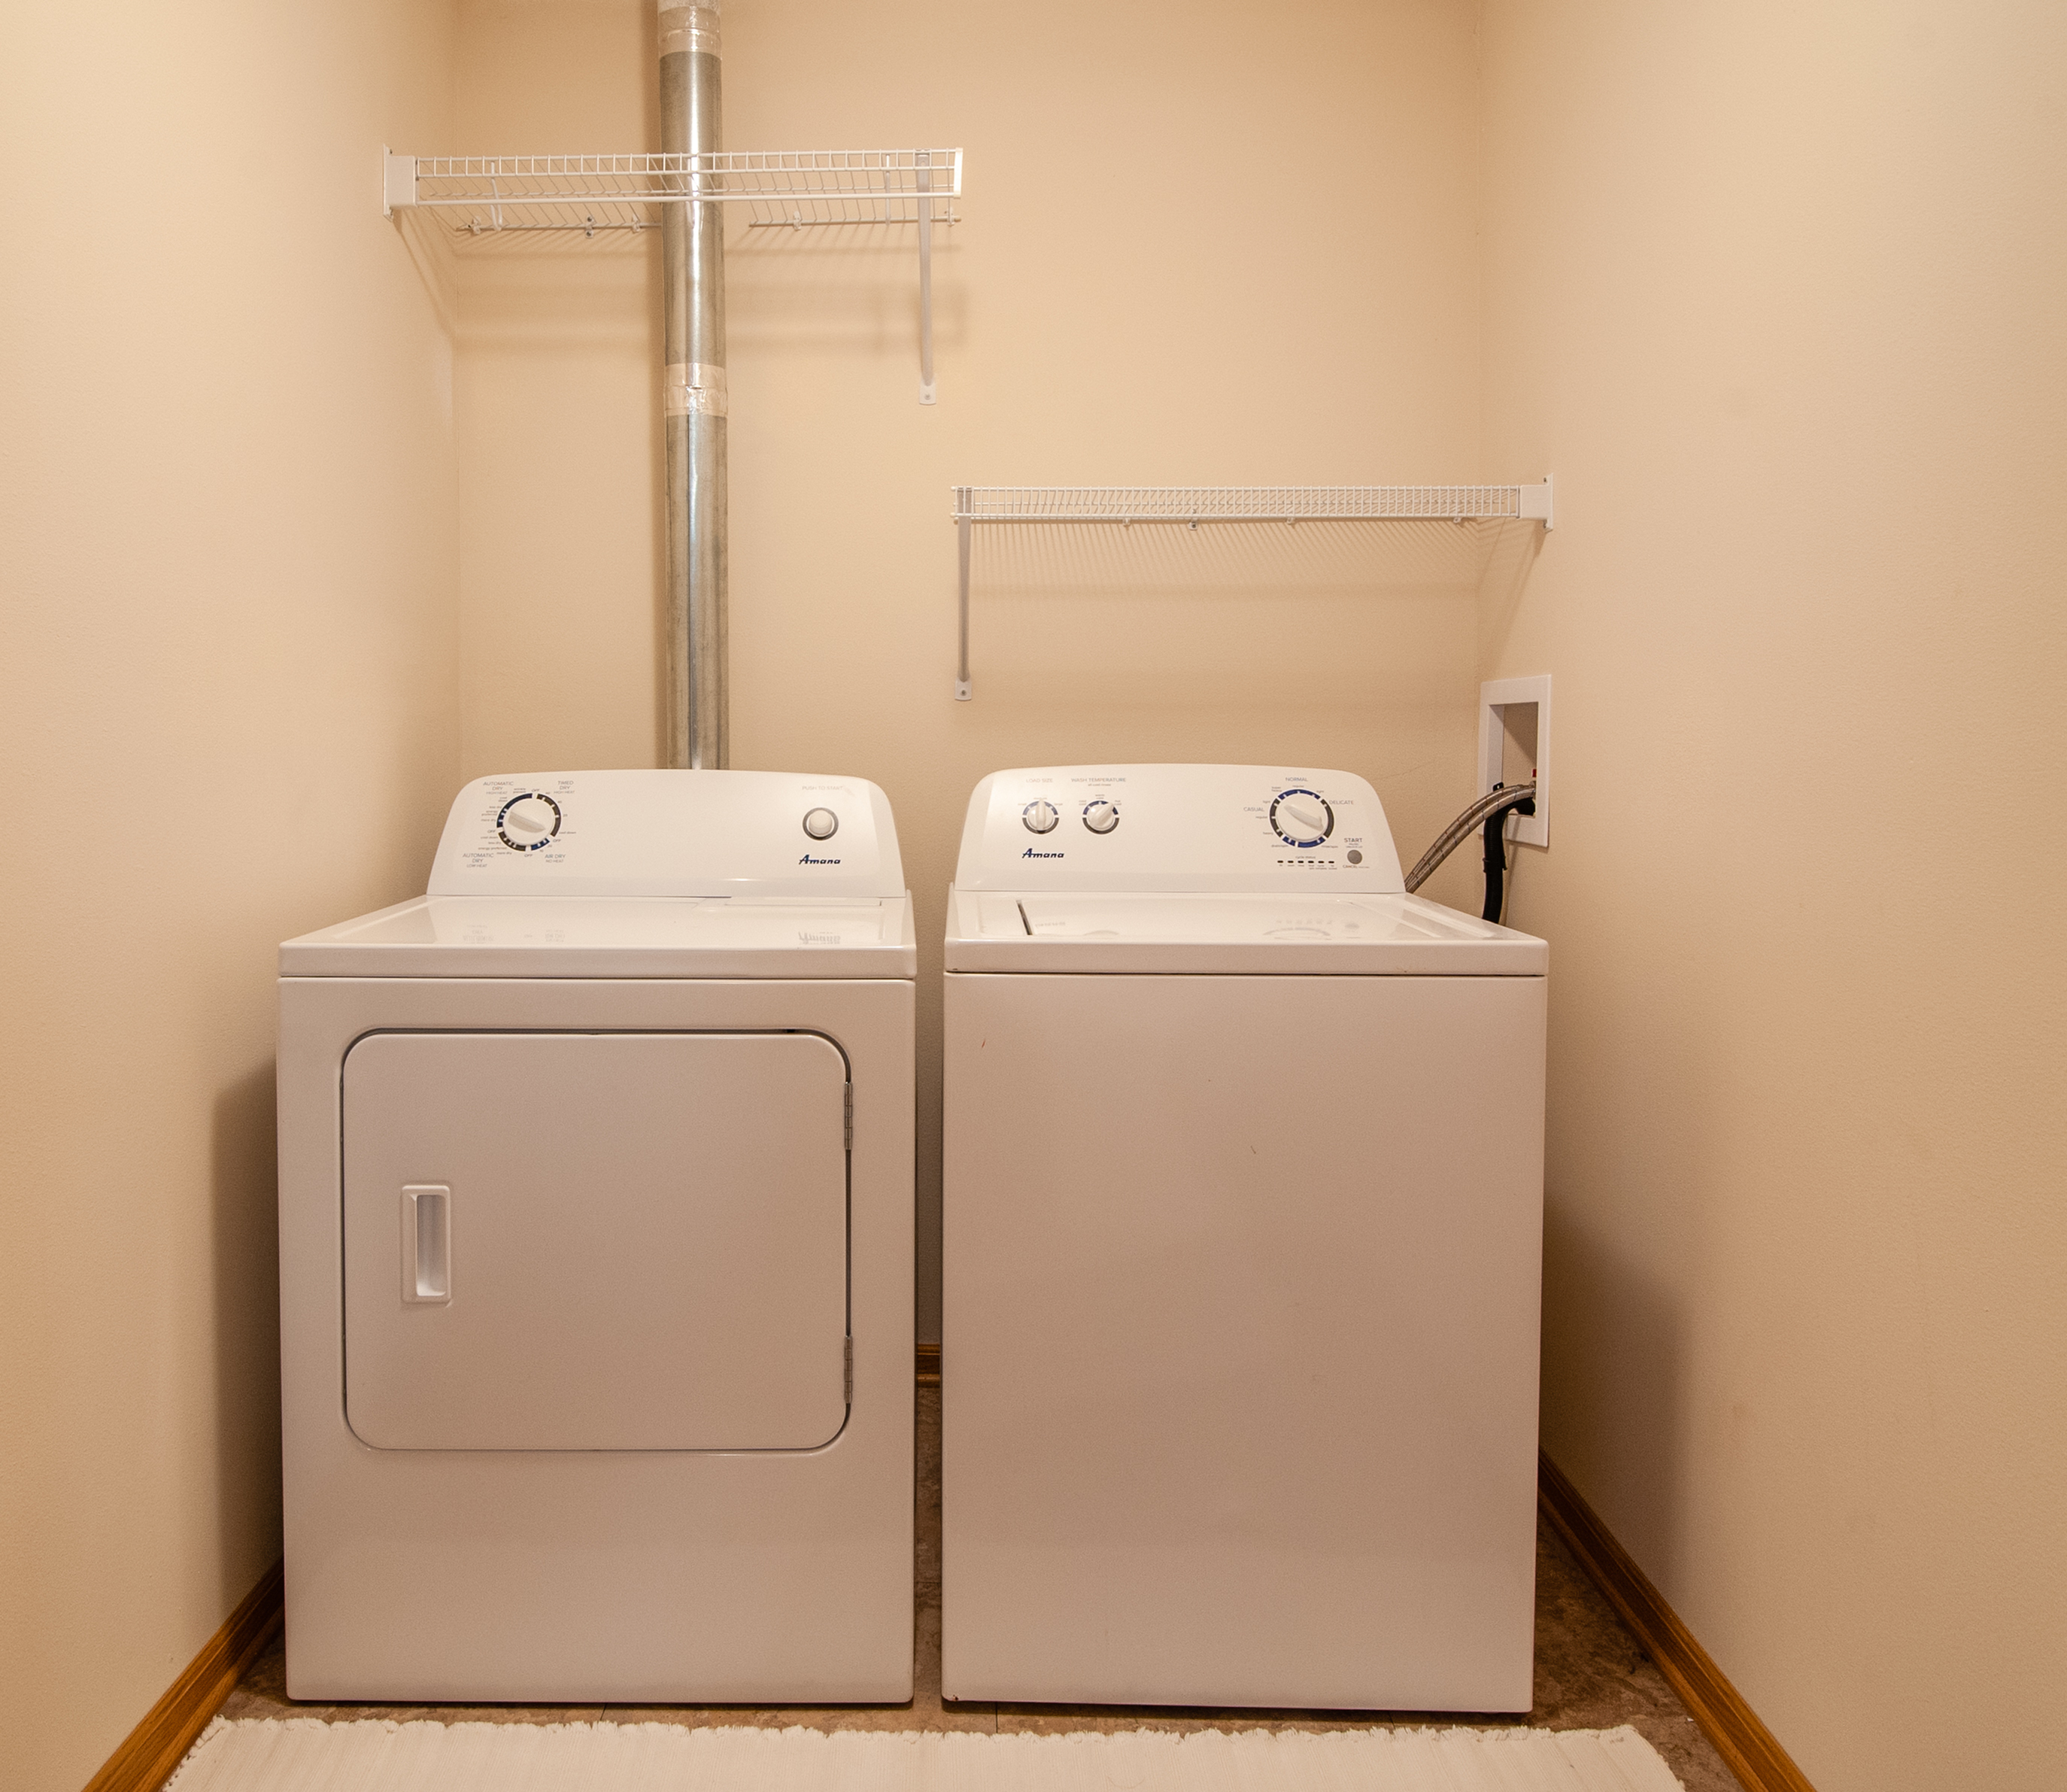 South Meadow Apartments_Laundry